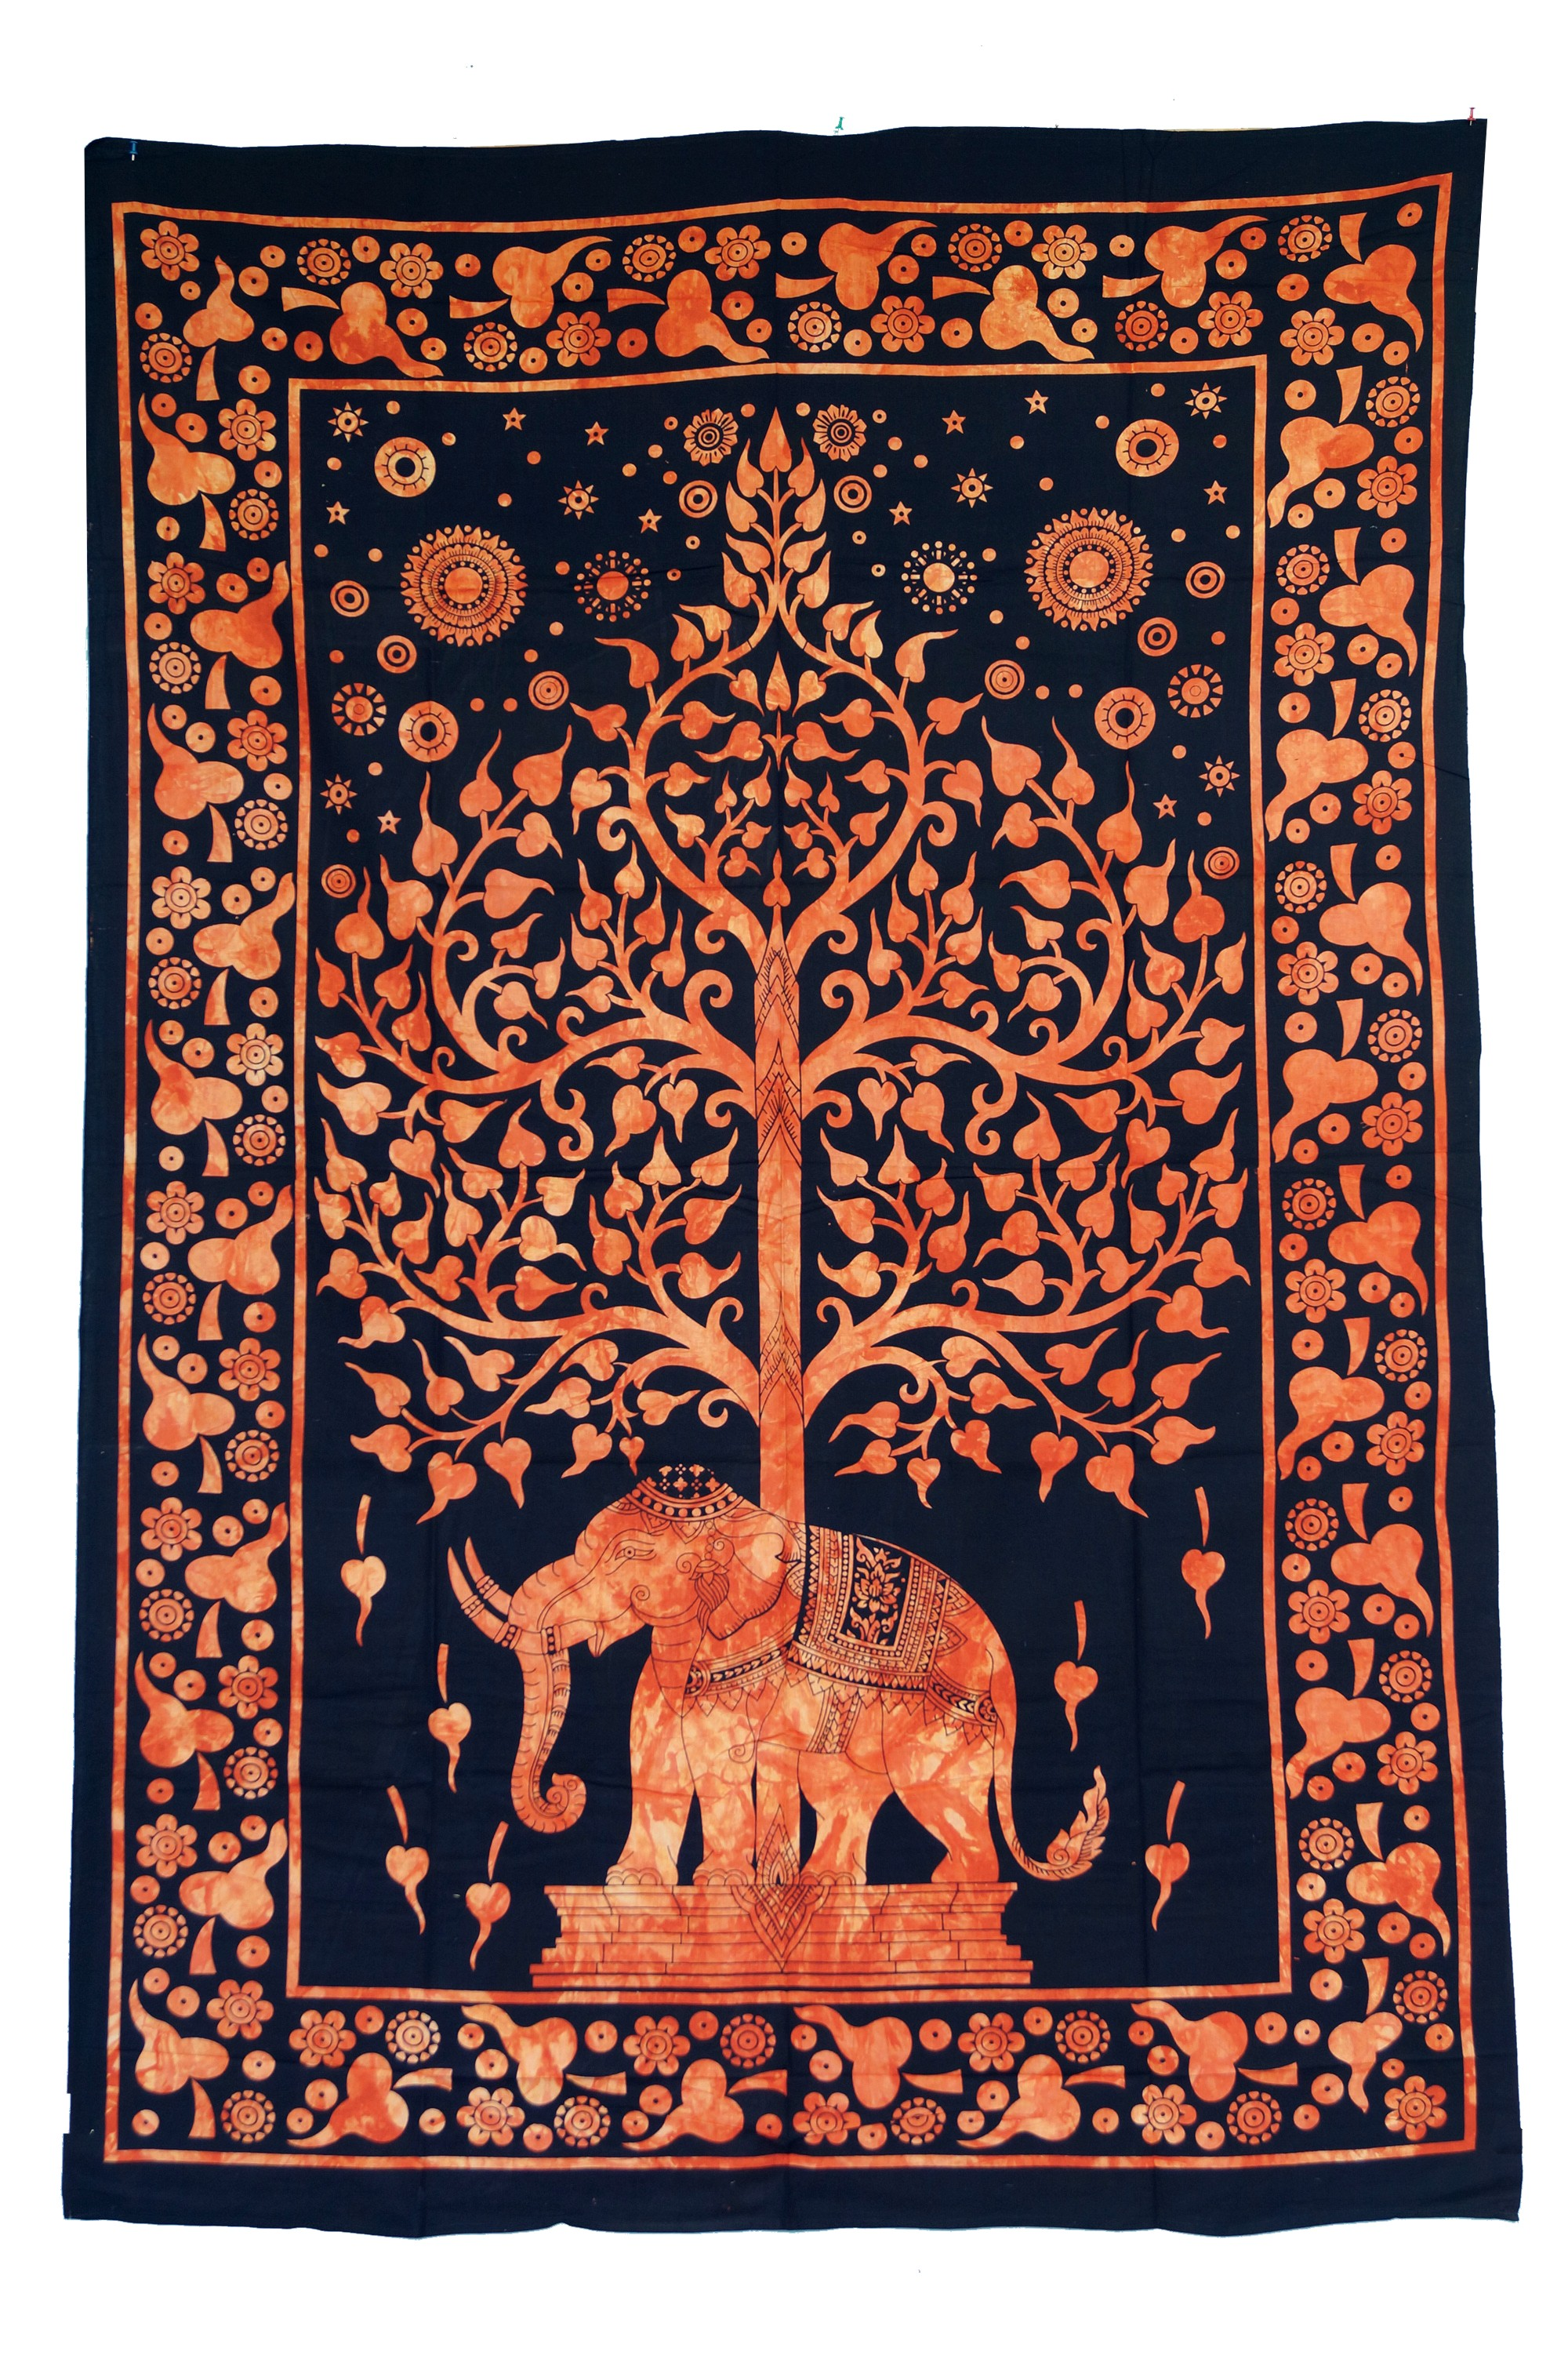 Tagesdecke Elefant Indisches Wandtuch Batik Tagesdecke Tree Of Life Elefant